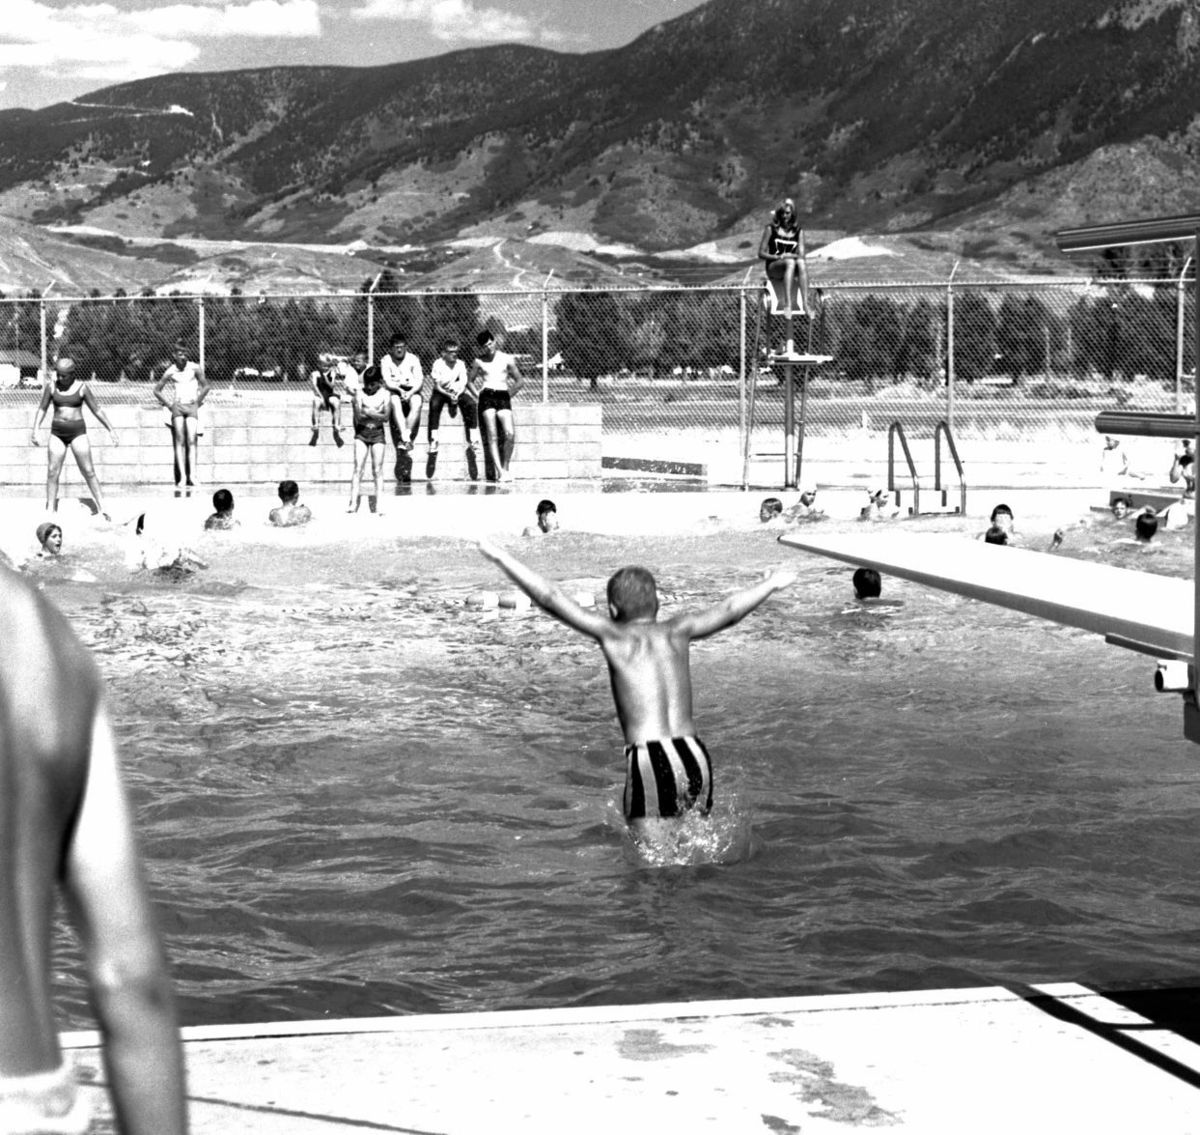 KBMF DJ Meetings are almost as fun as swimming at Stodden Park in Butte in the 1960s.